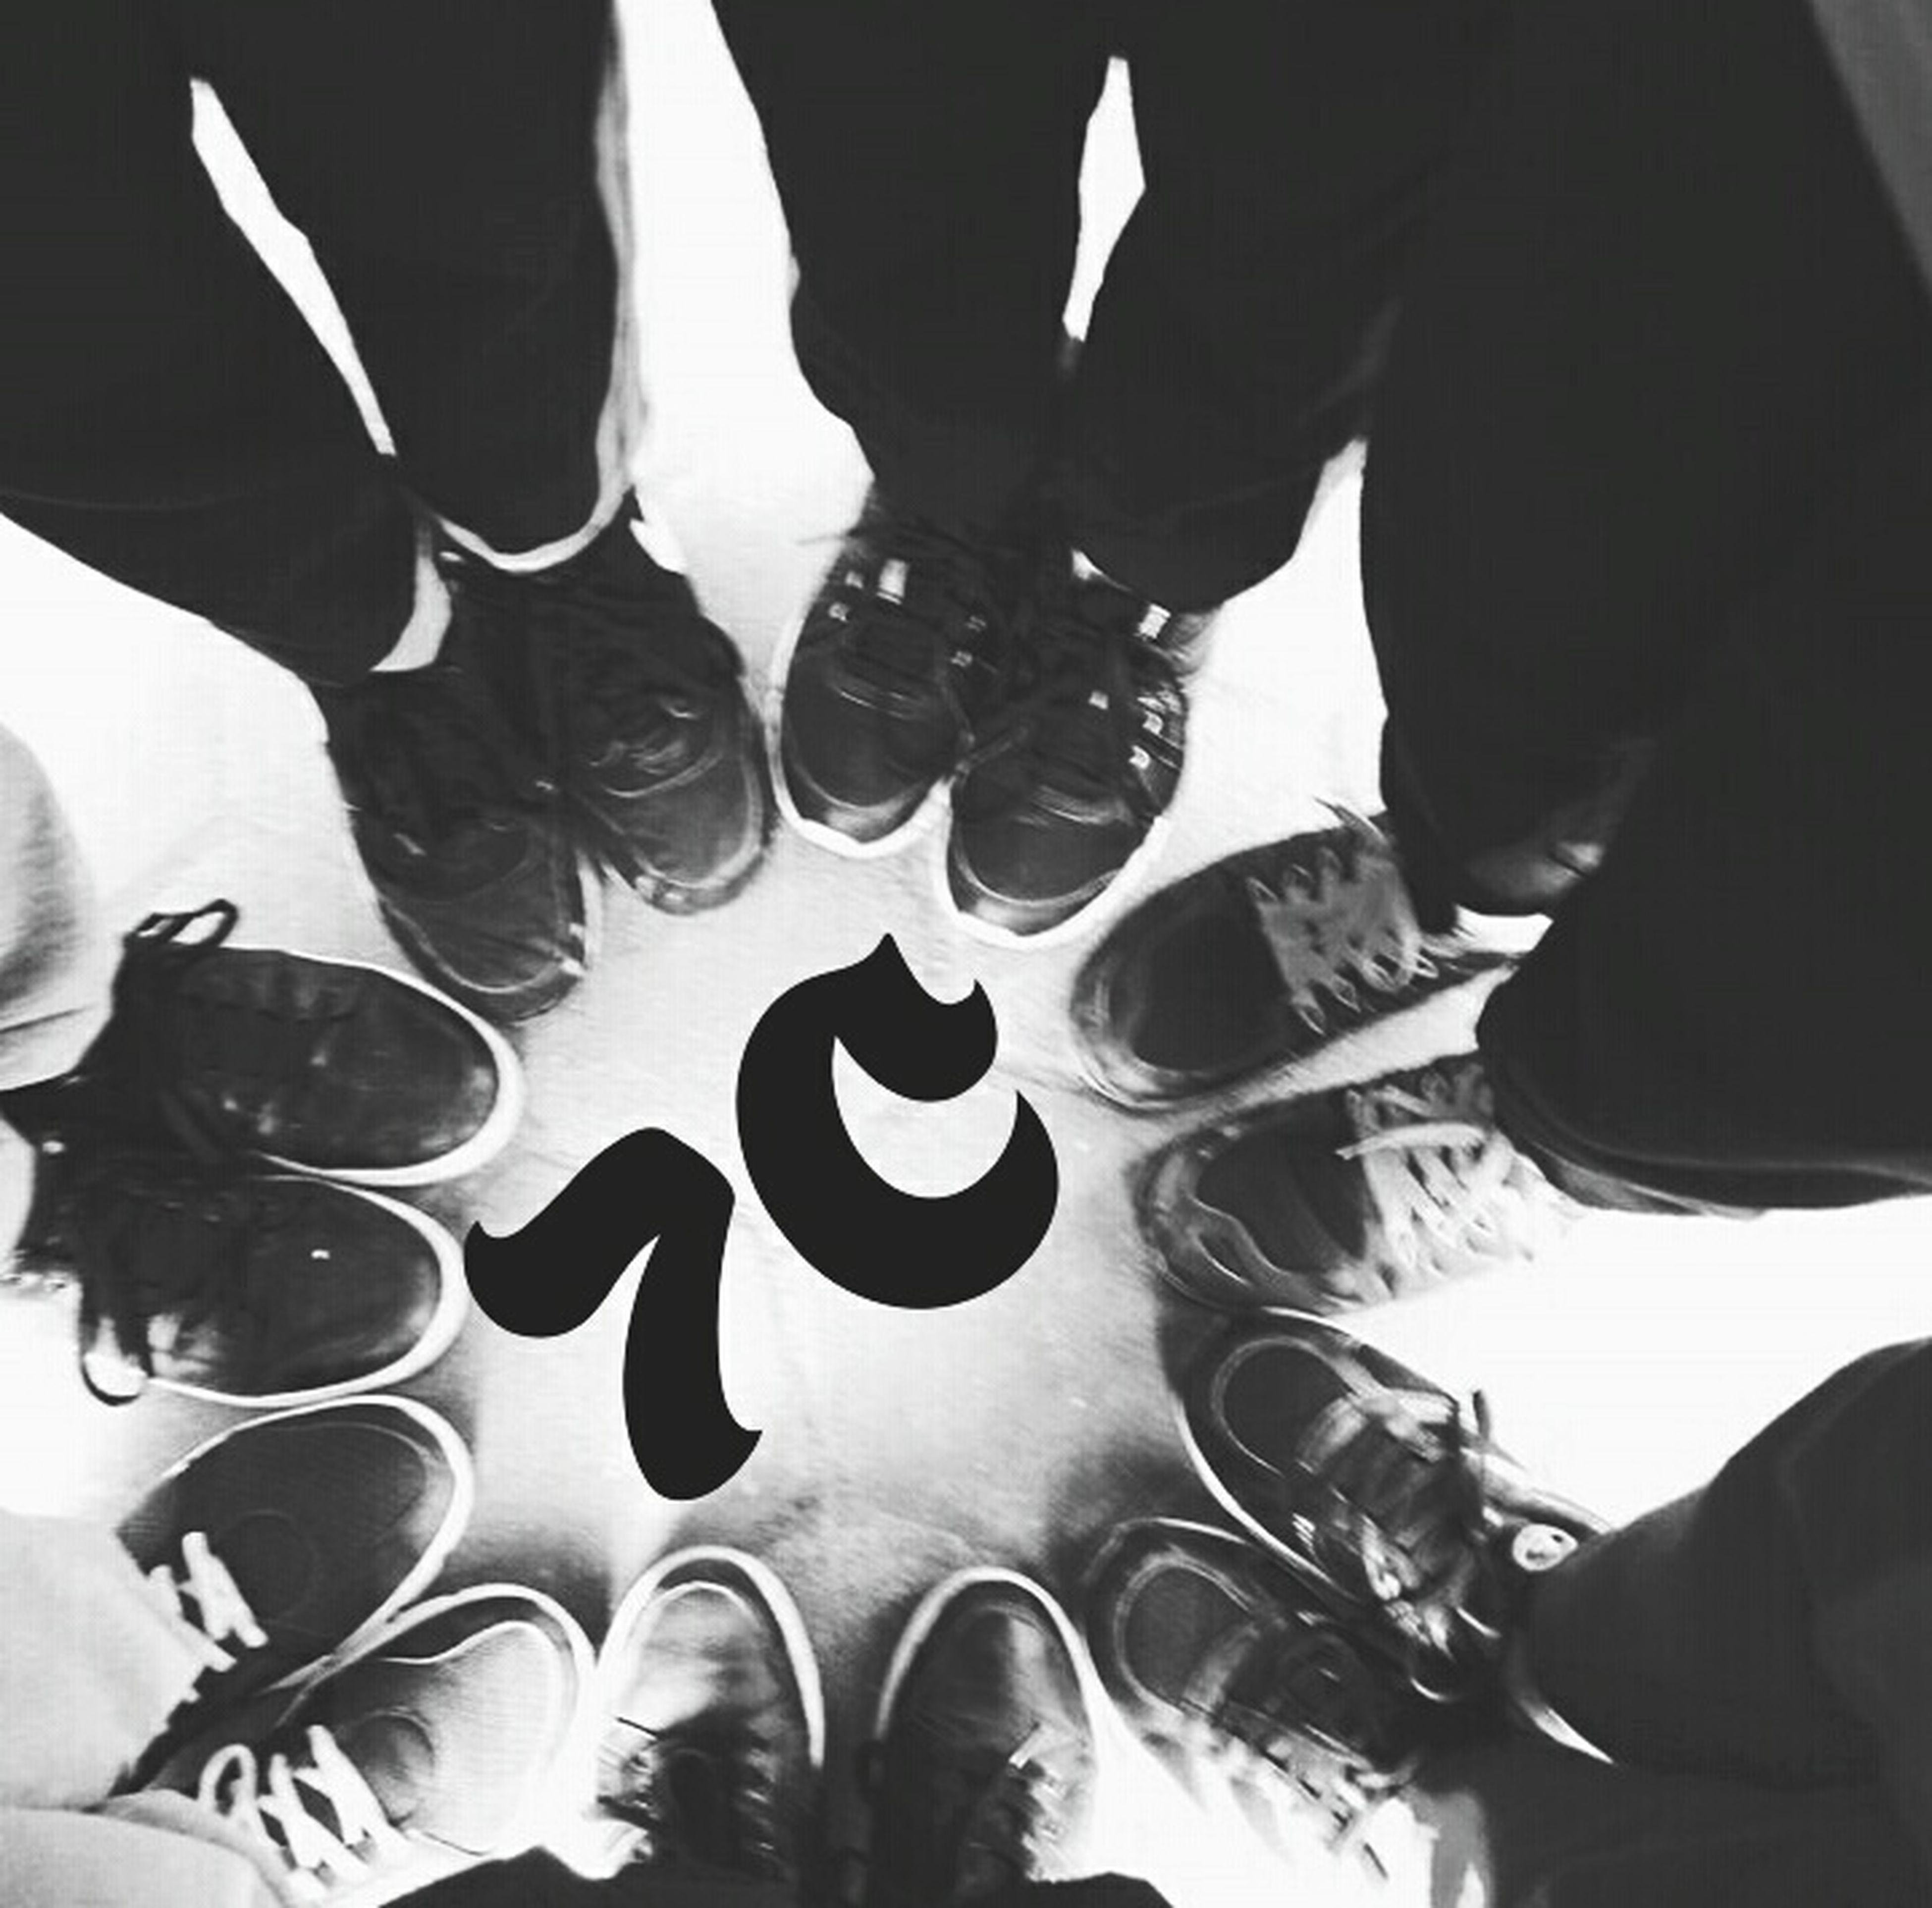 lifestyles, low section, men, person, leisure activity, shoe, togetherness, standing, friendship, human foot, casual clothing, part of, bonding